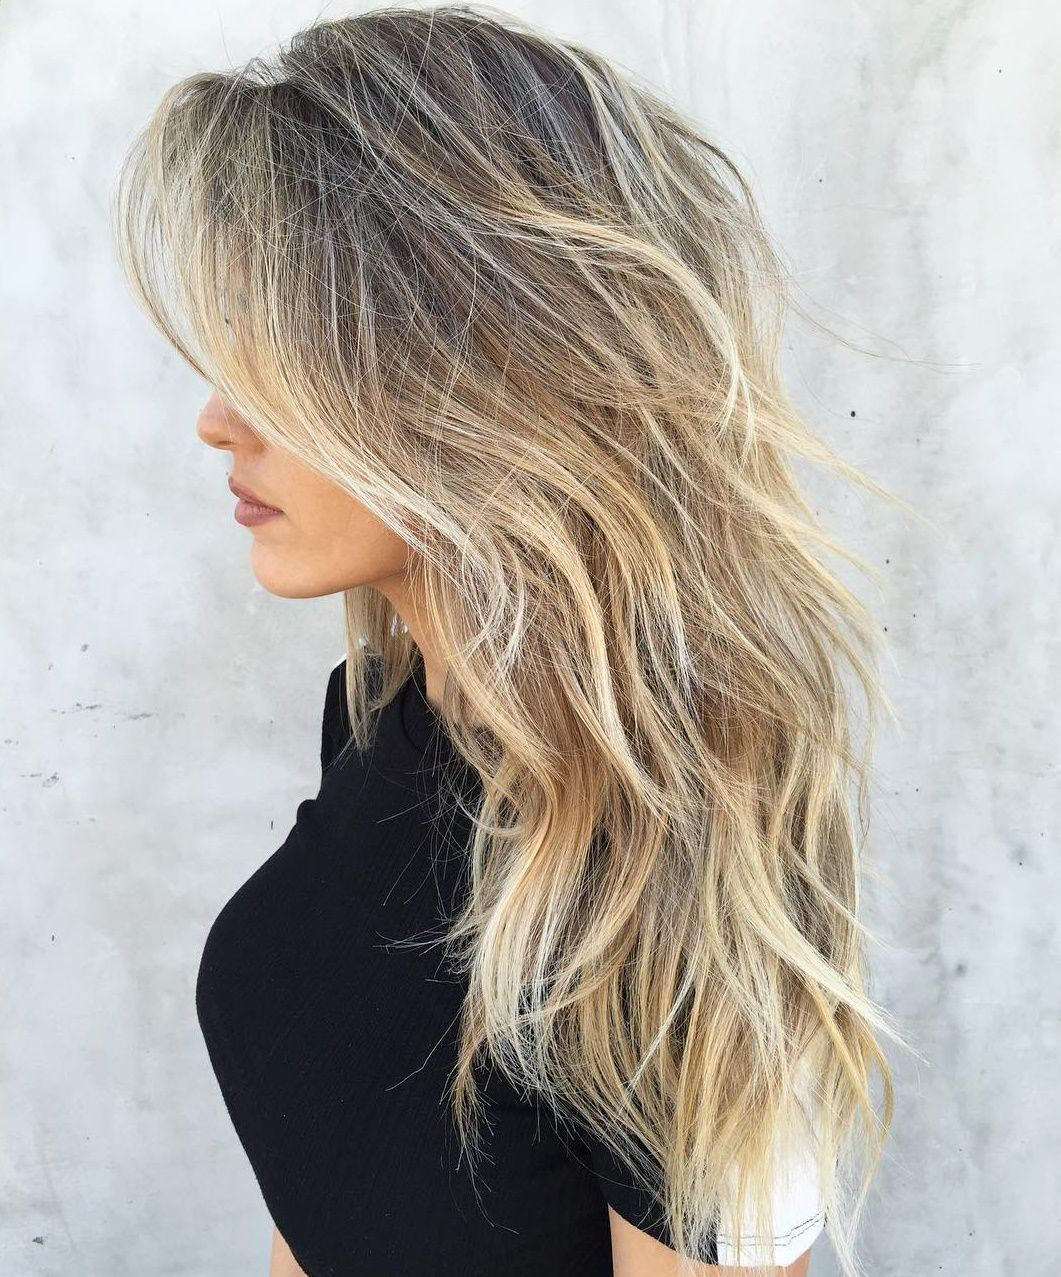 50 NEW Long Hairstyles with Layers for 2020 - Hair Adviser